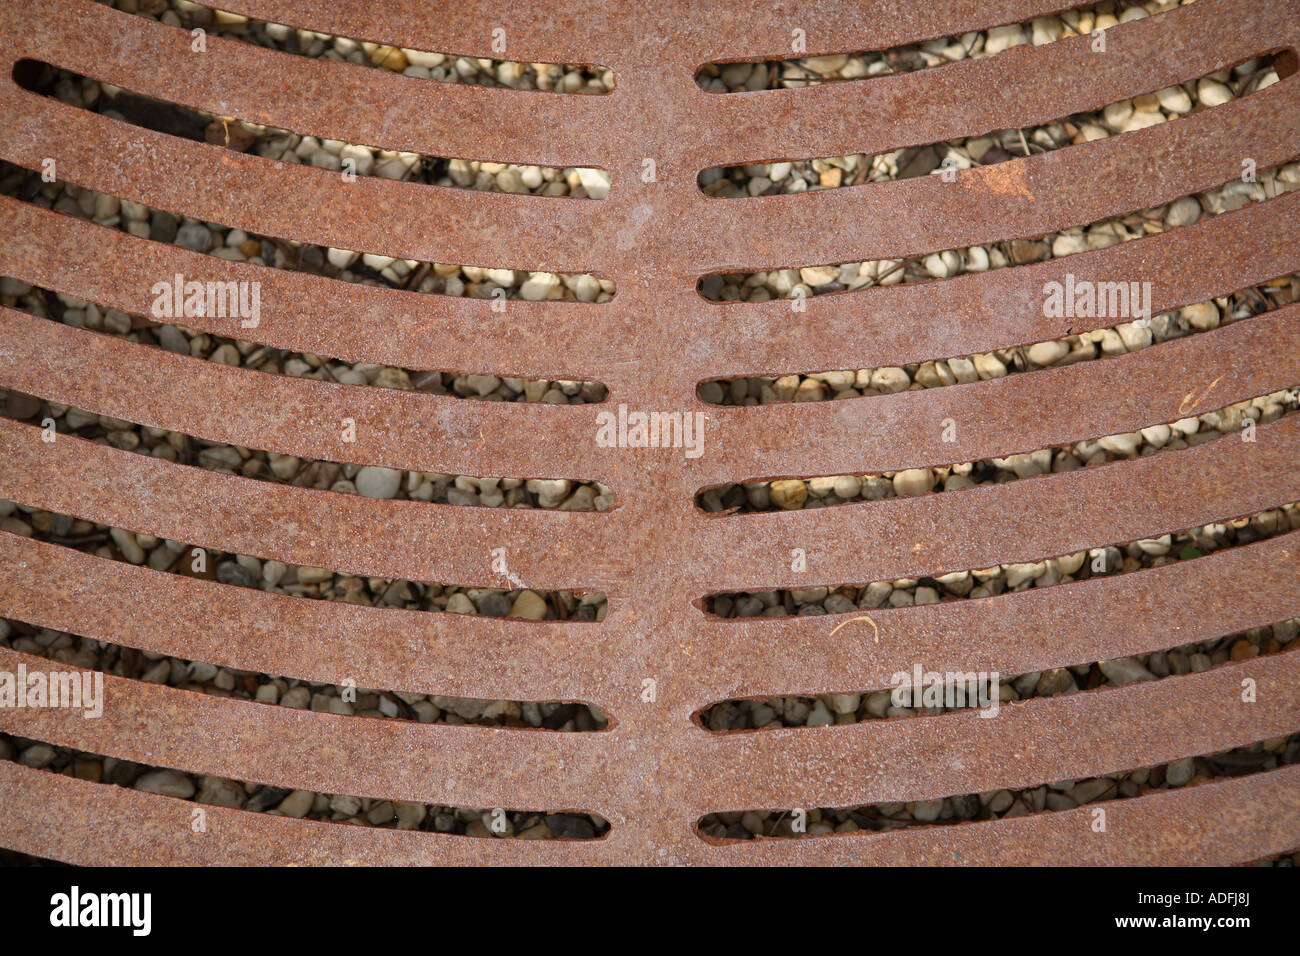 Storm Sewer Grate Stock Photos Amp Storm Sewer Grate Stock